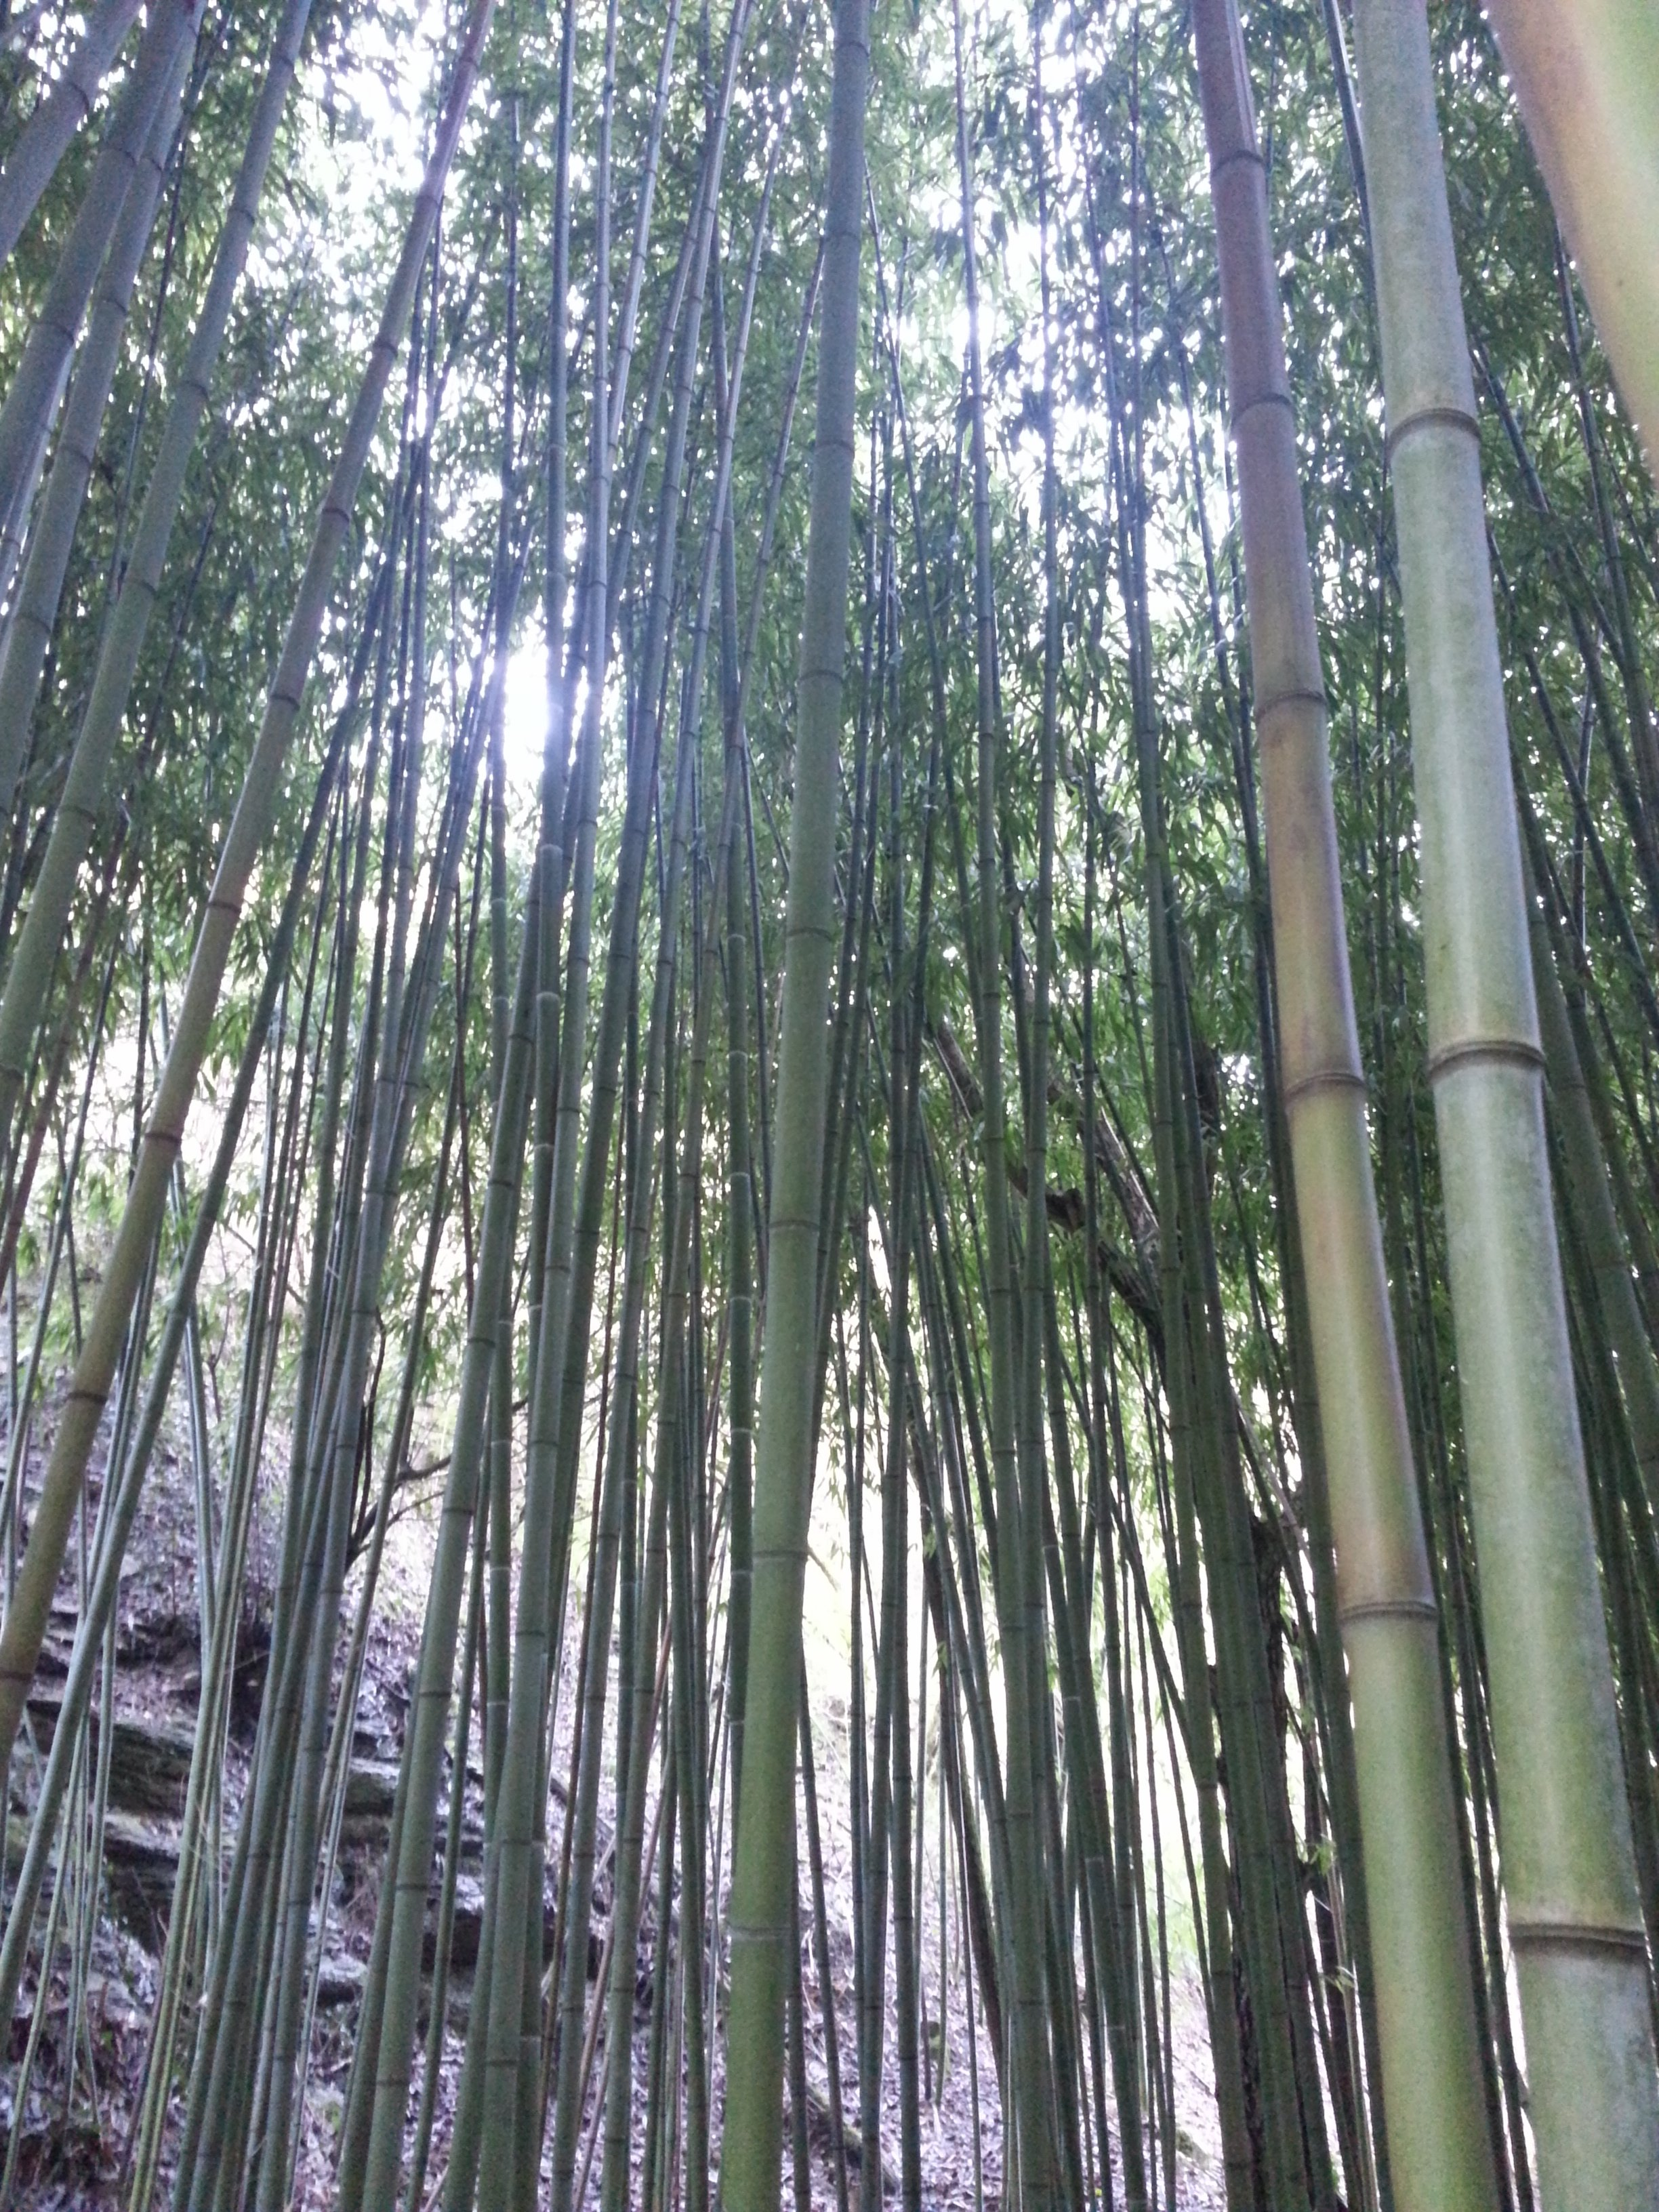 Closer look at the bamboo forest. Very zen moment for us